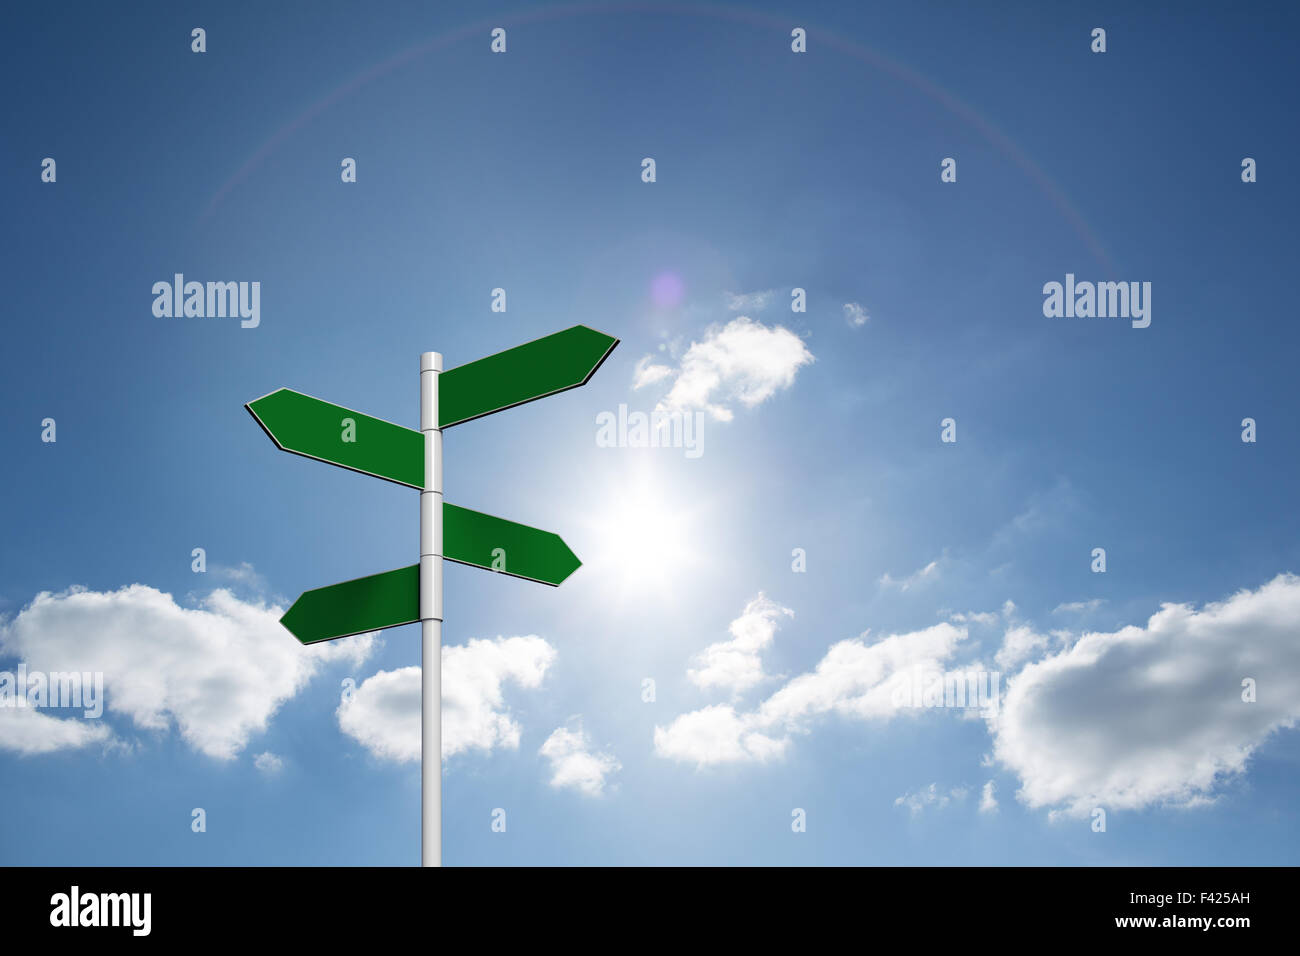 Composite image of green signpost - Stock Image